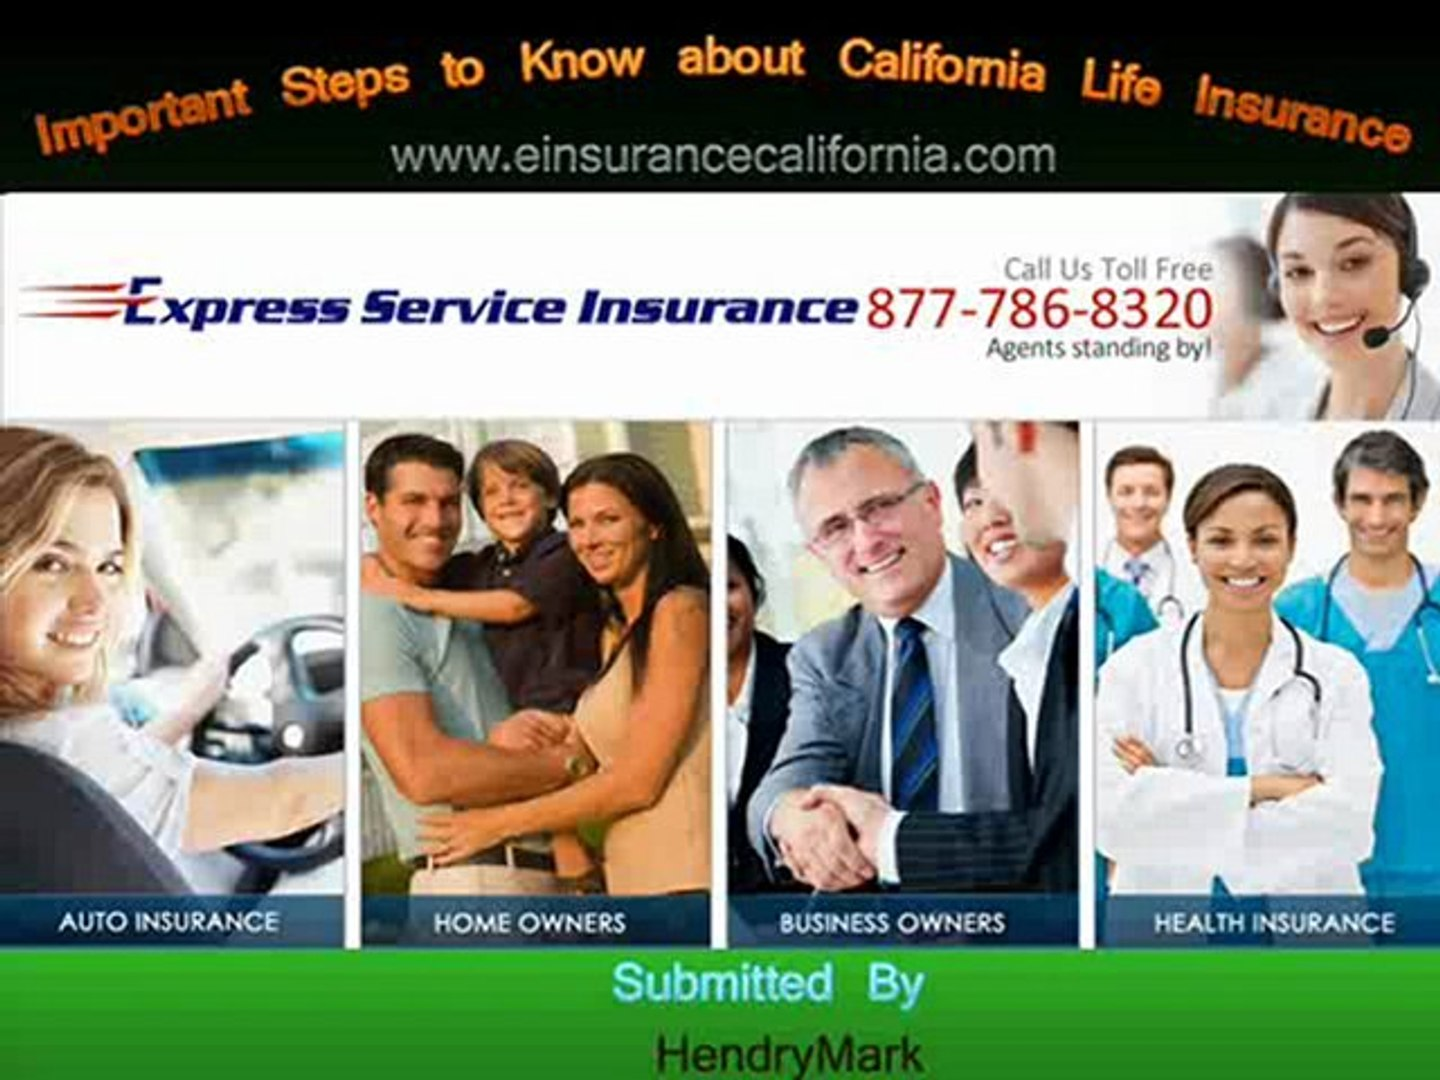 Important Steps to Know about California Life Insurance